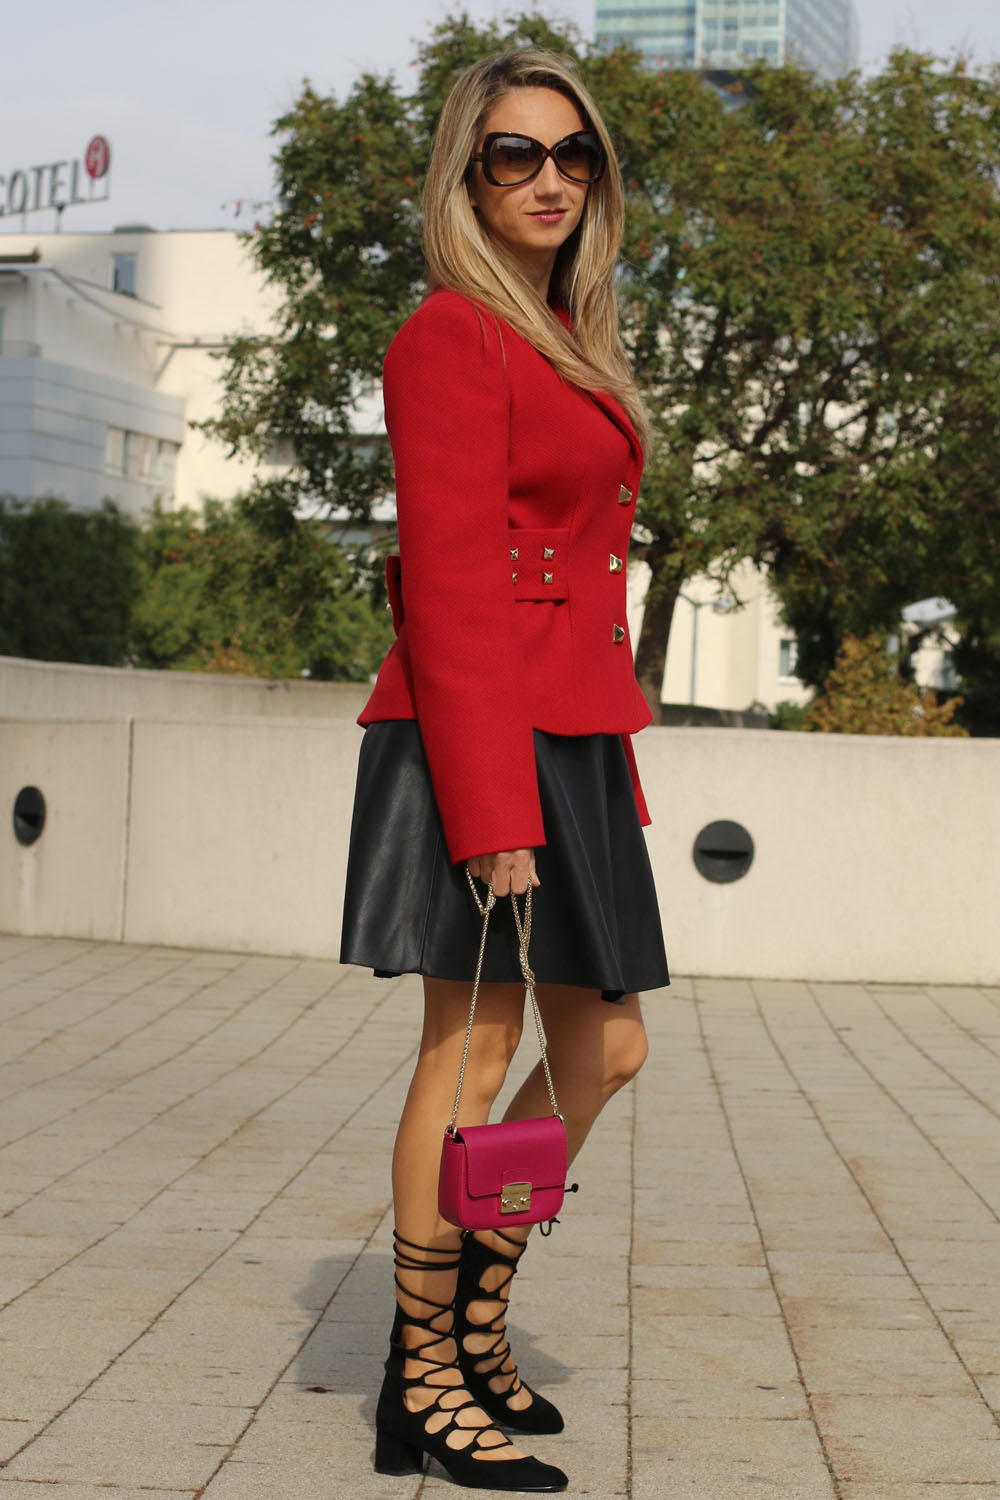 colourclub-outfit-moschino-blazer-lether-dress8